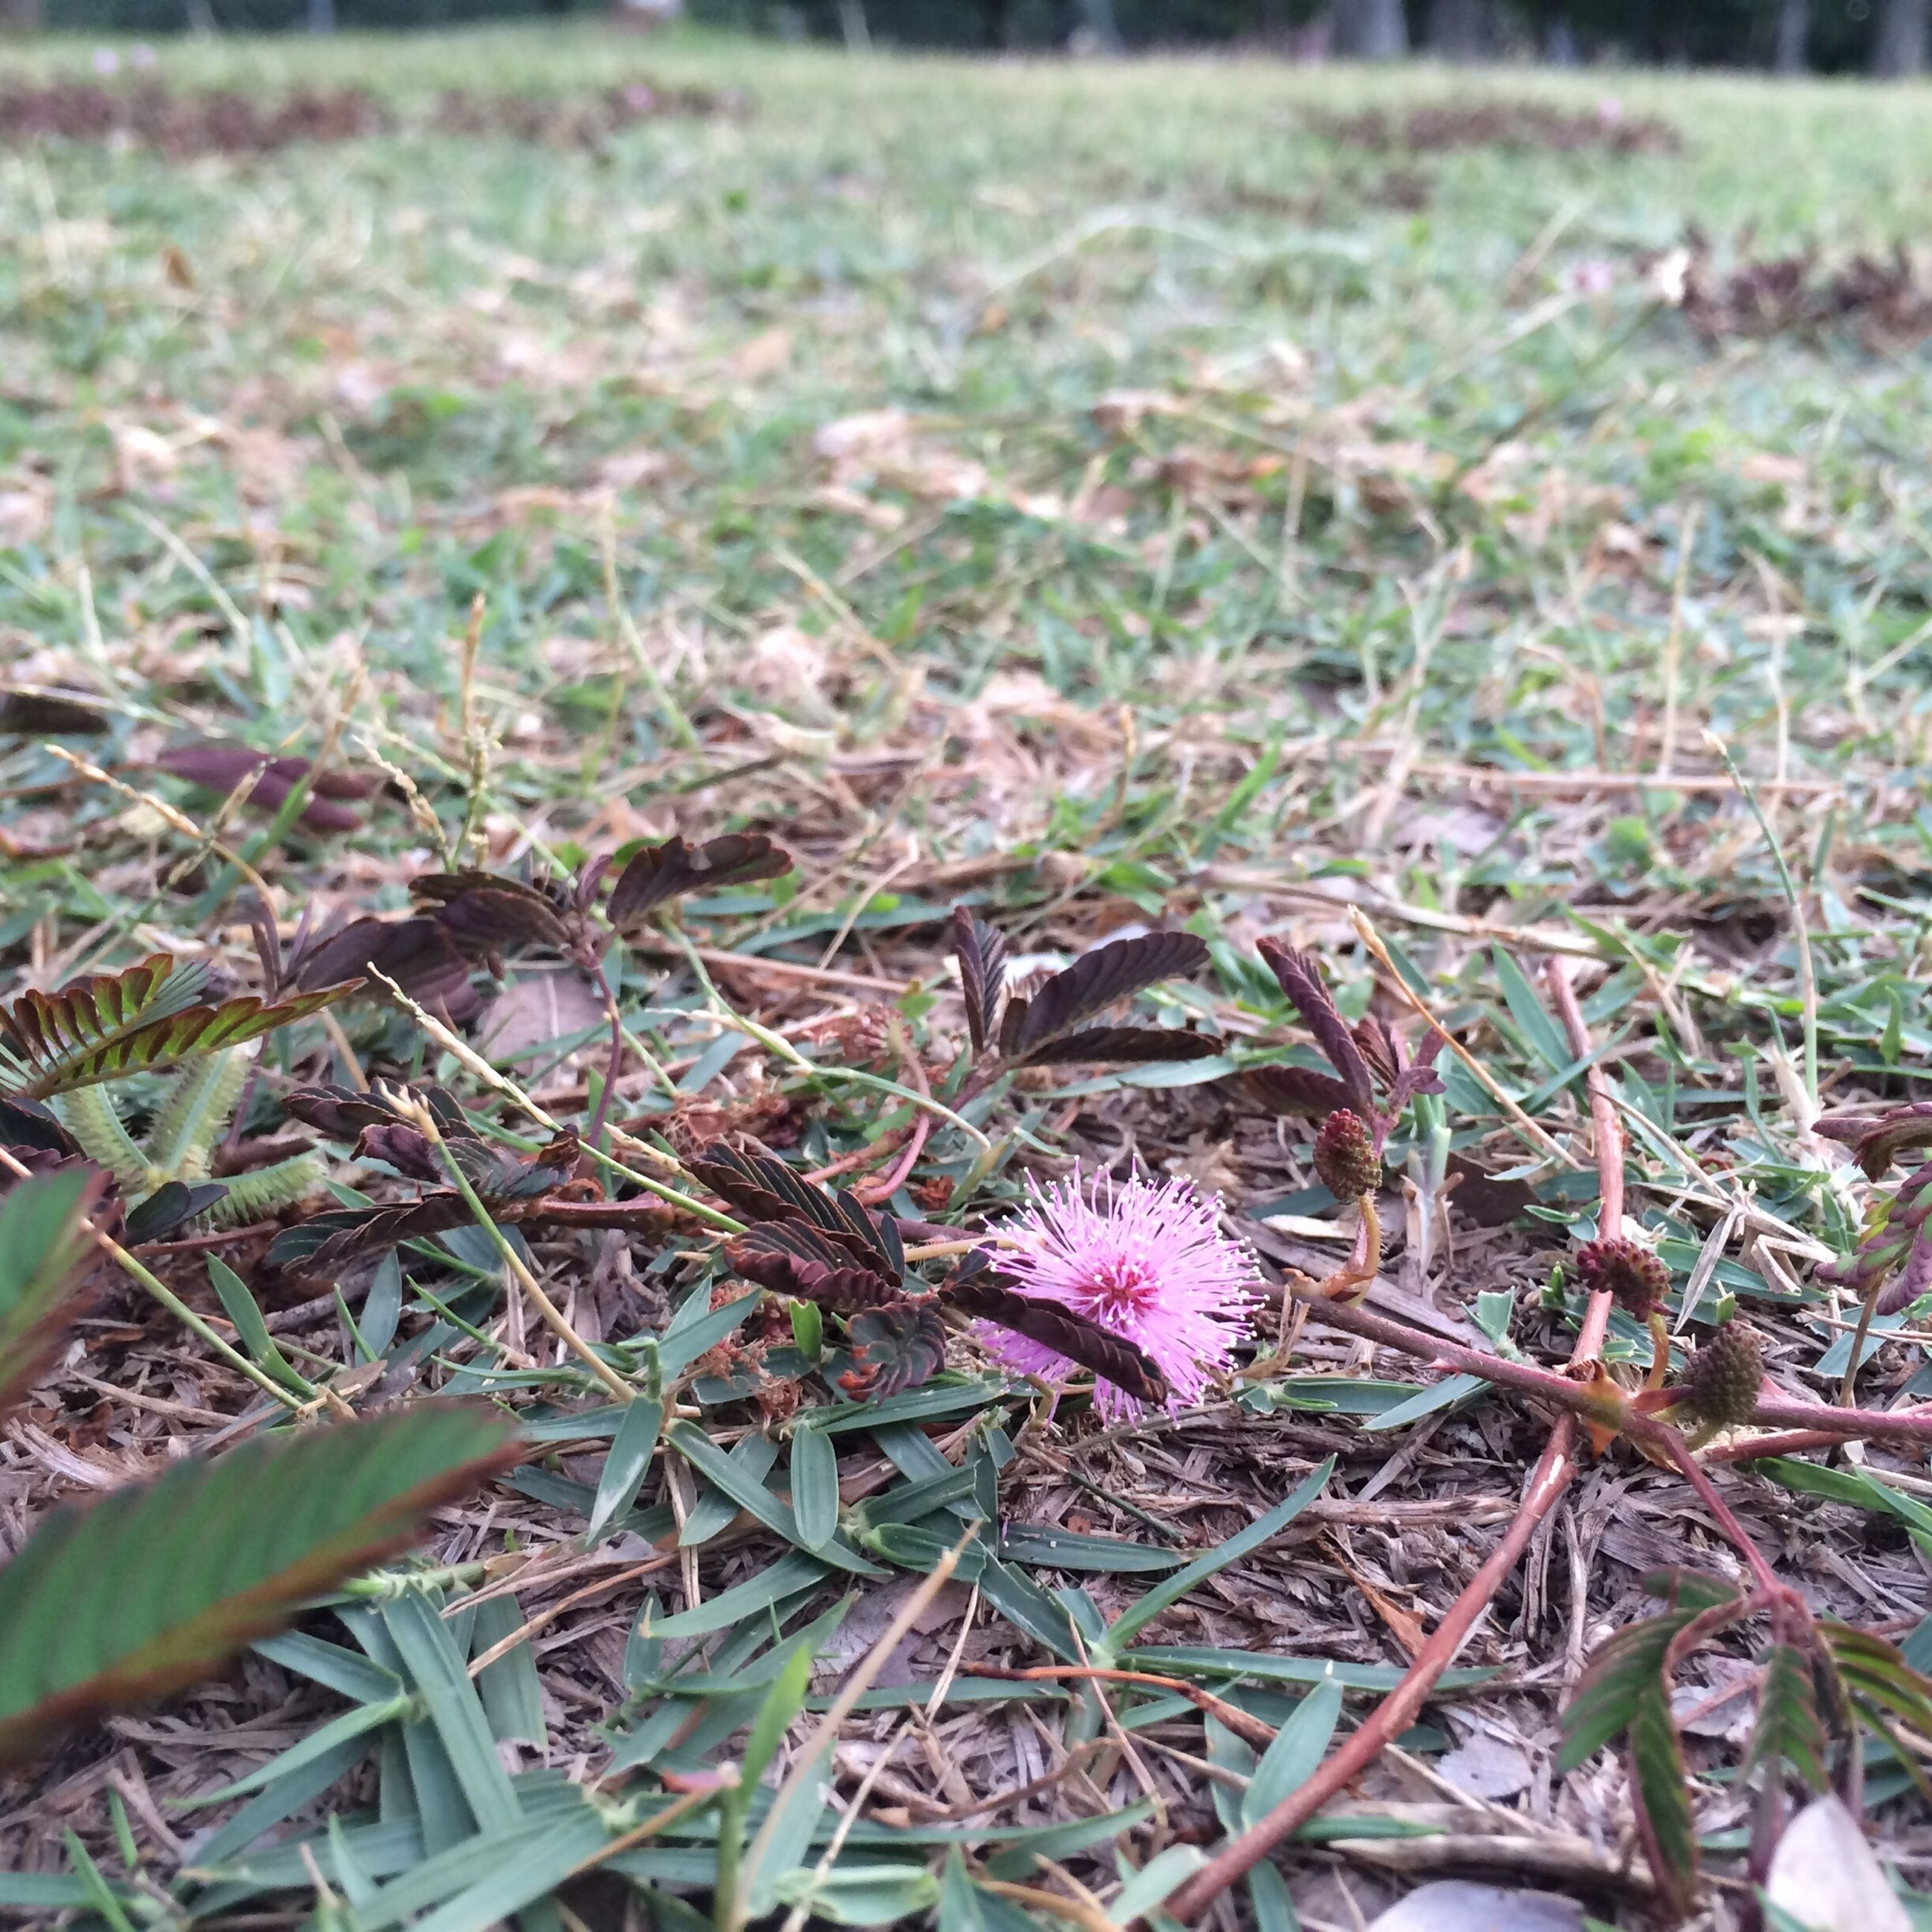 grass, flower, growth, fragility, field, plant, nature, freshness, focus on foreground, beauty in nature, close-up, petal, grassy, flower head, blooming, selective focus, day, outdoors, high angle view, no people